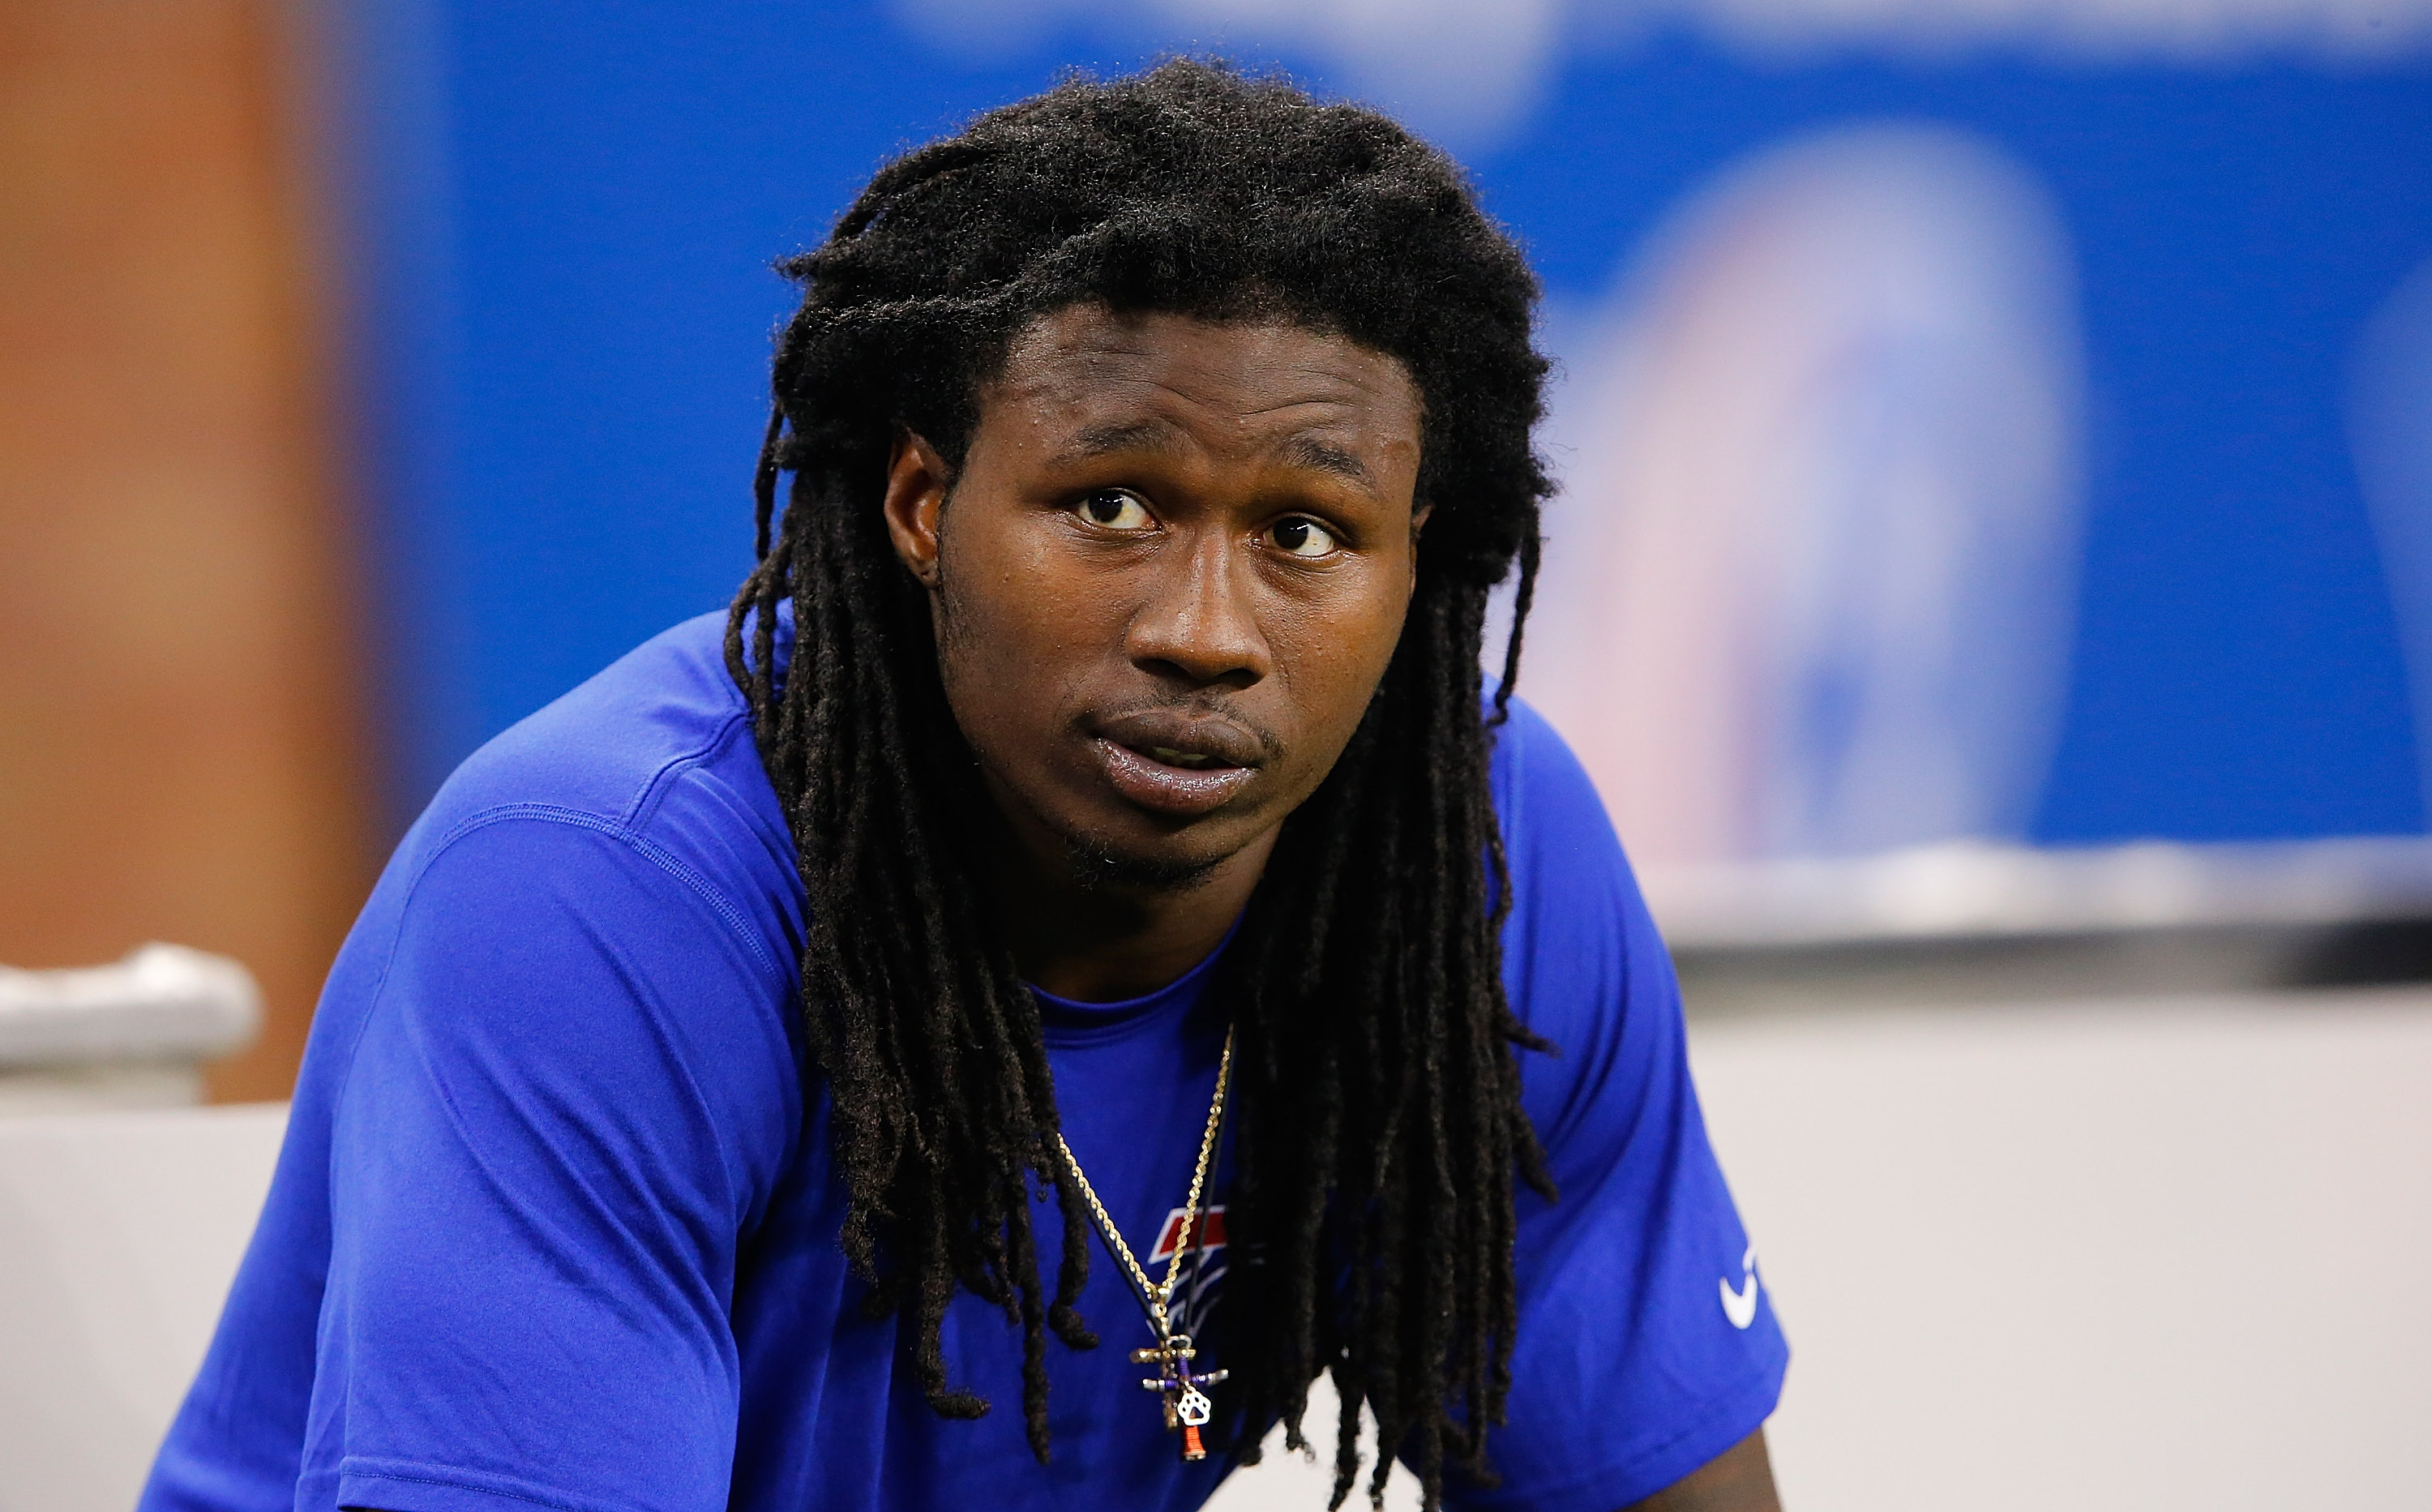 Sammy Watkins Might Be in a Cult